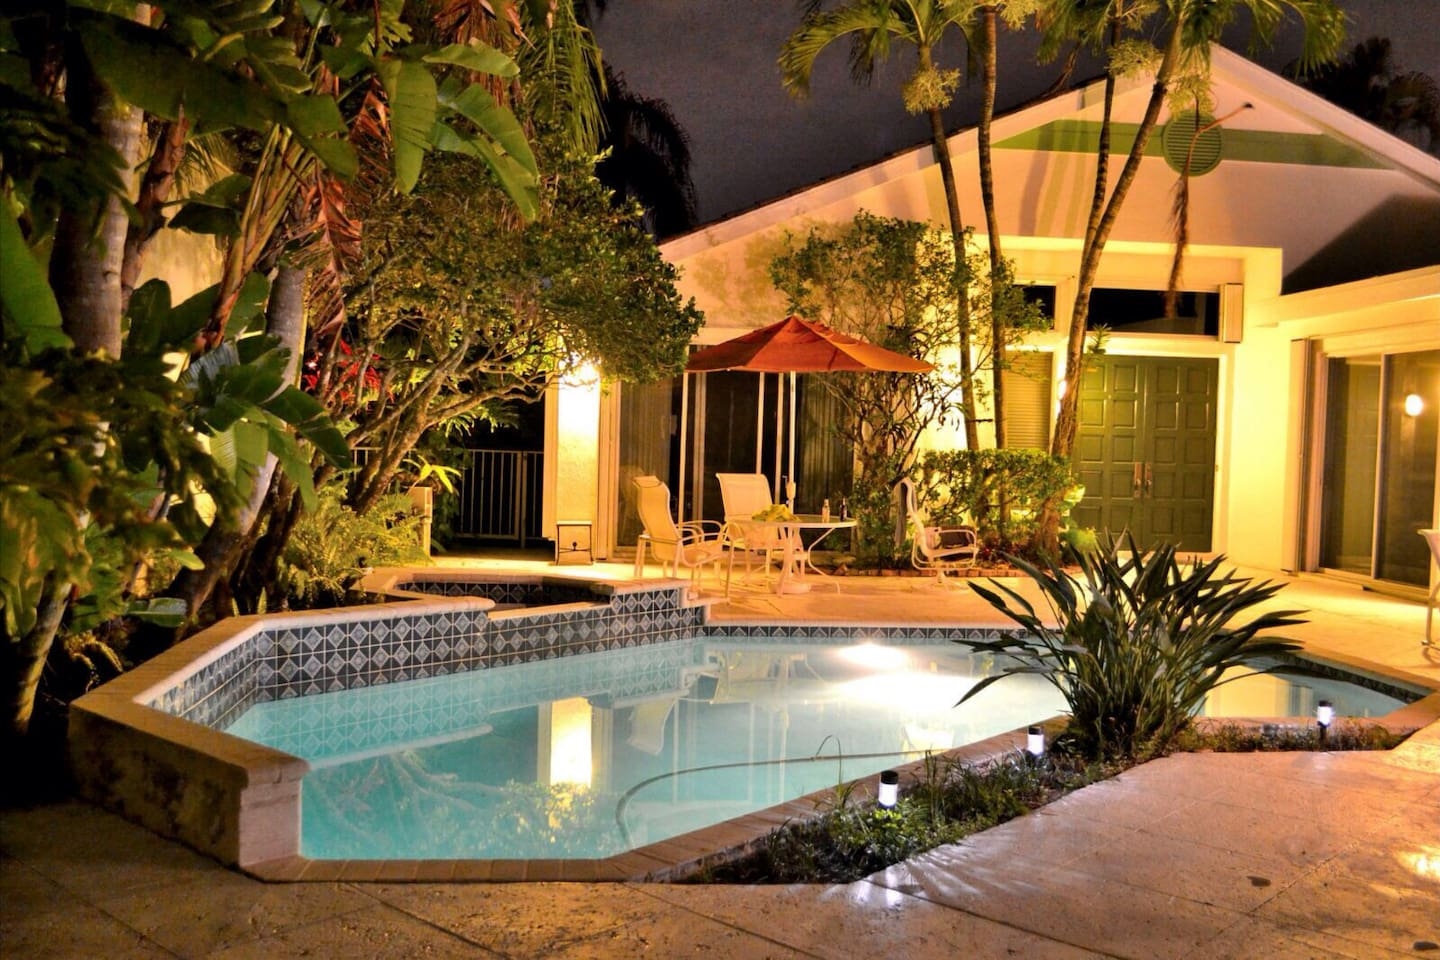 2 Bedroom Private Pool House - Guesthouses for Rent in Pembroke ...